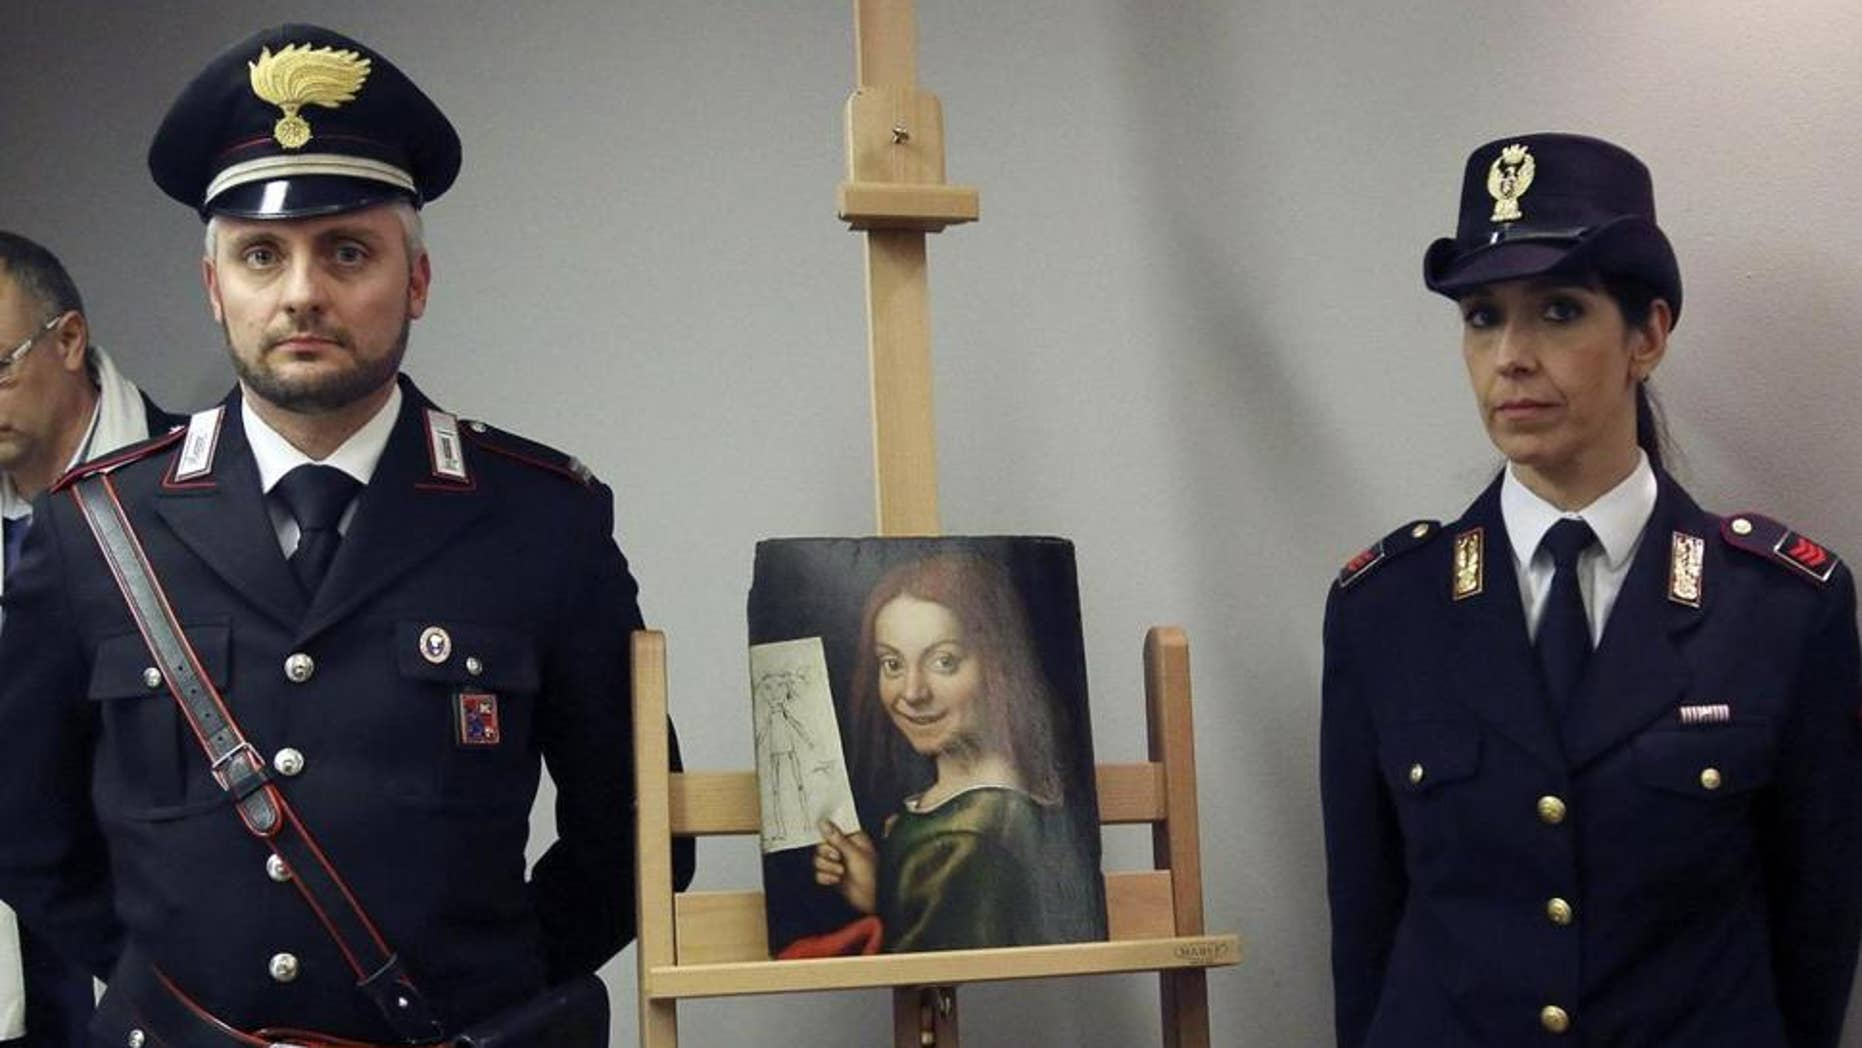 Carabinieri and police officers pose with one of the recovered paintings that were stolen from a Verona museum, at the Verona airport in Italy.